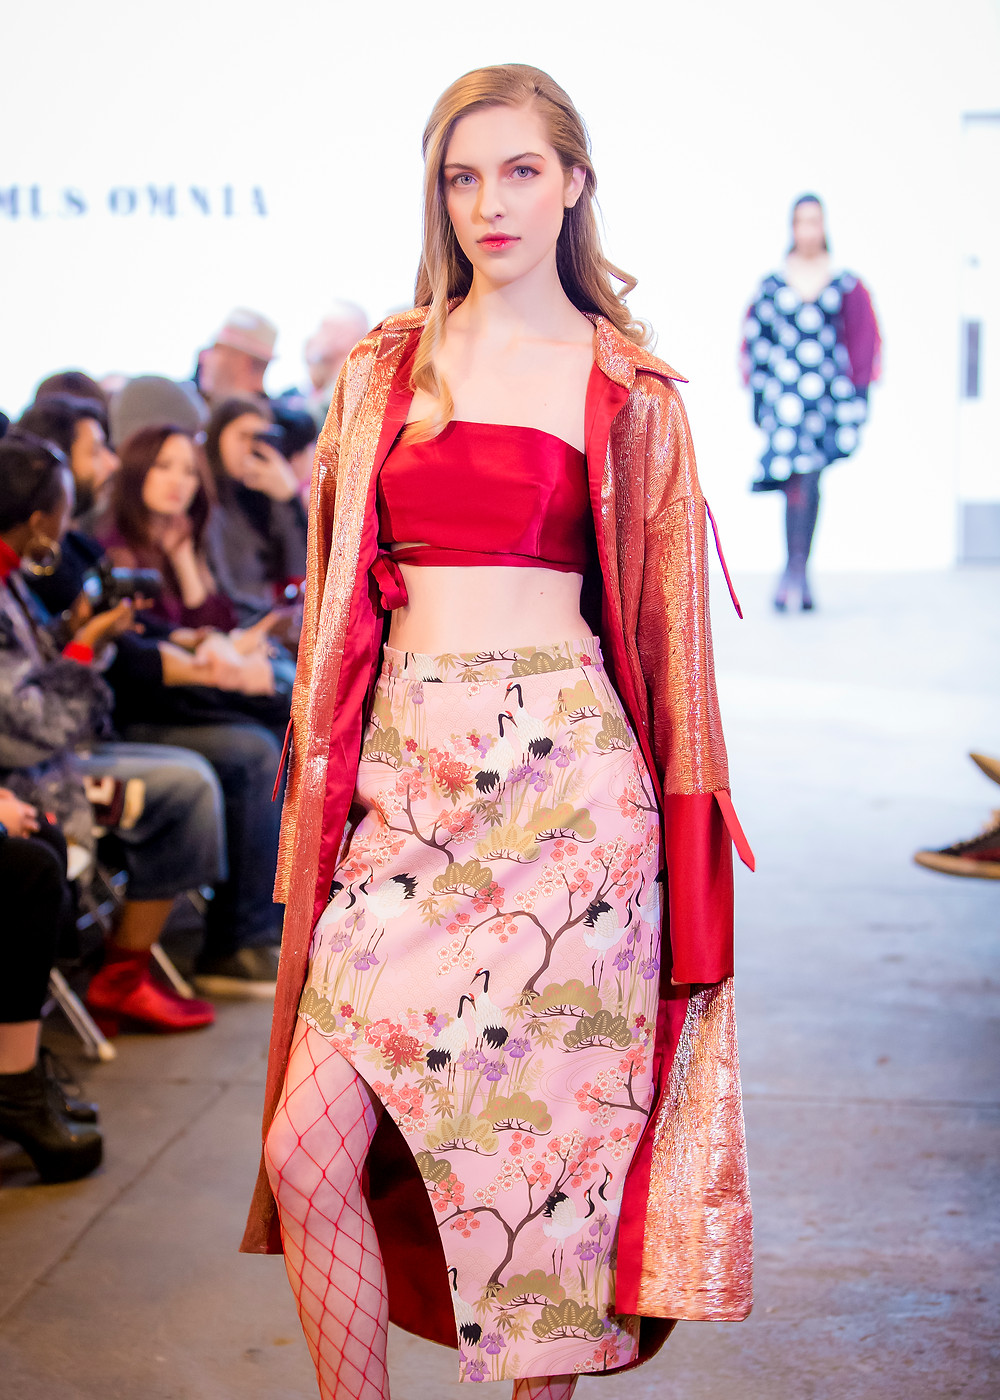 A skirt made out of the Japanese Garden Pink Fabric in Videmus Omnia's Labyrinth collection for the New York Fashion Week.